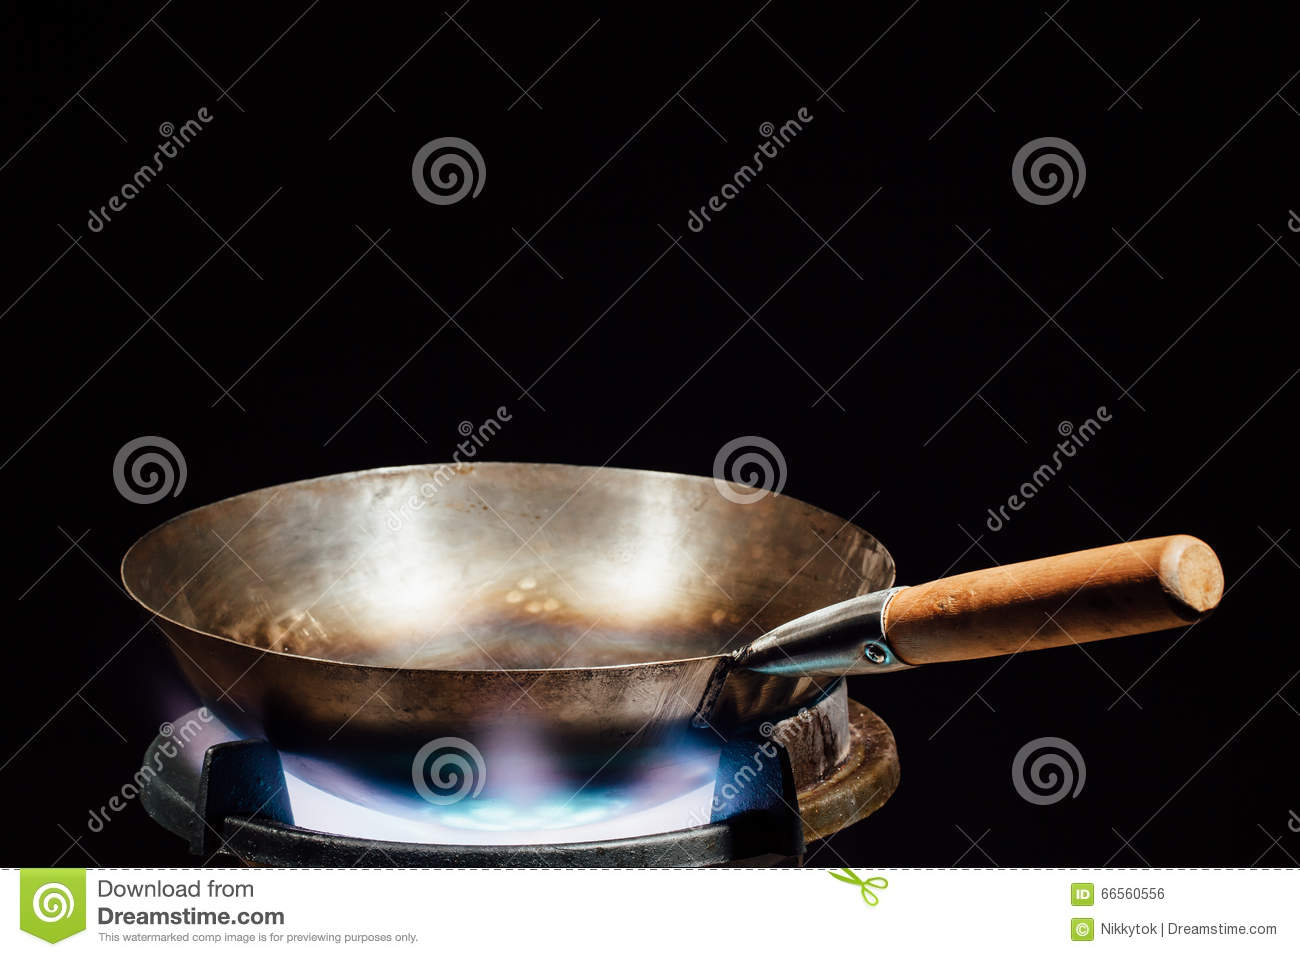 casserole chinoise de wok sur le br leur gaz du feu photo stock image du nourriture sain. Black Bedroom Furniture Sets. Home Design Ideas